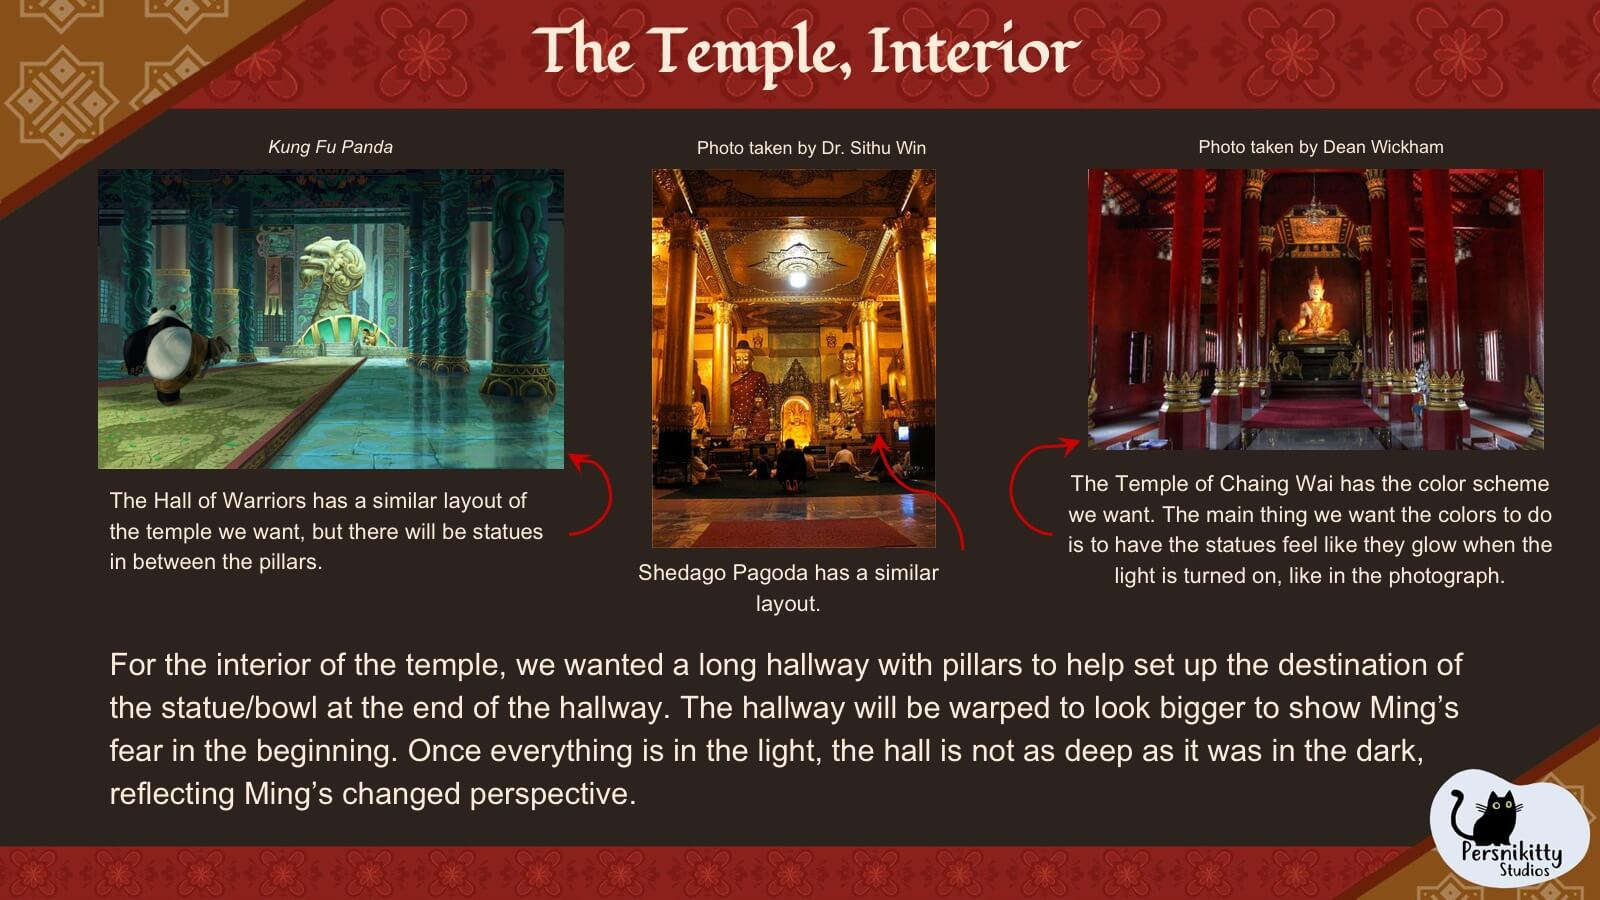 A slide displaying visual references for the temple interior.